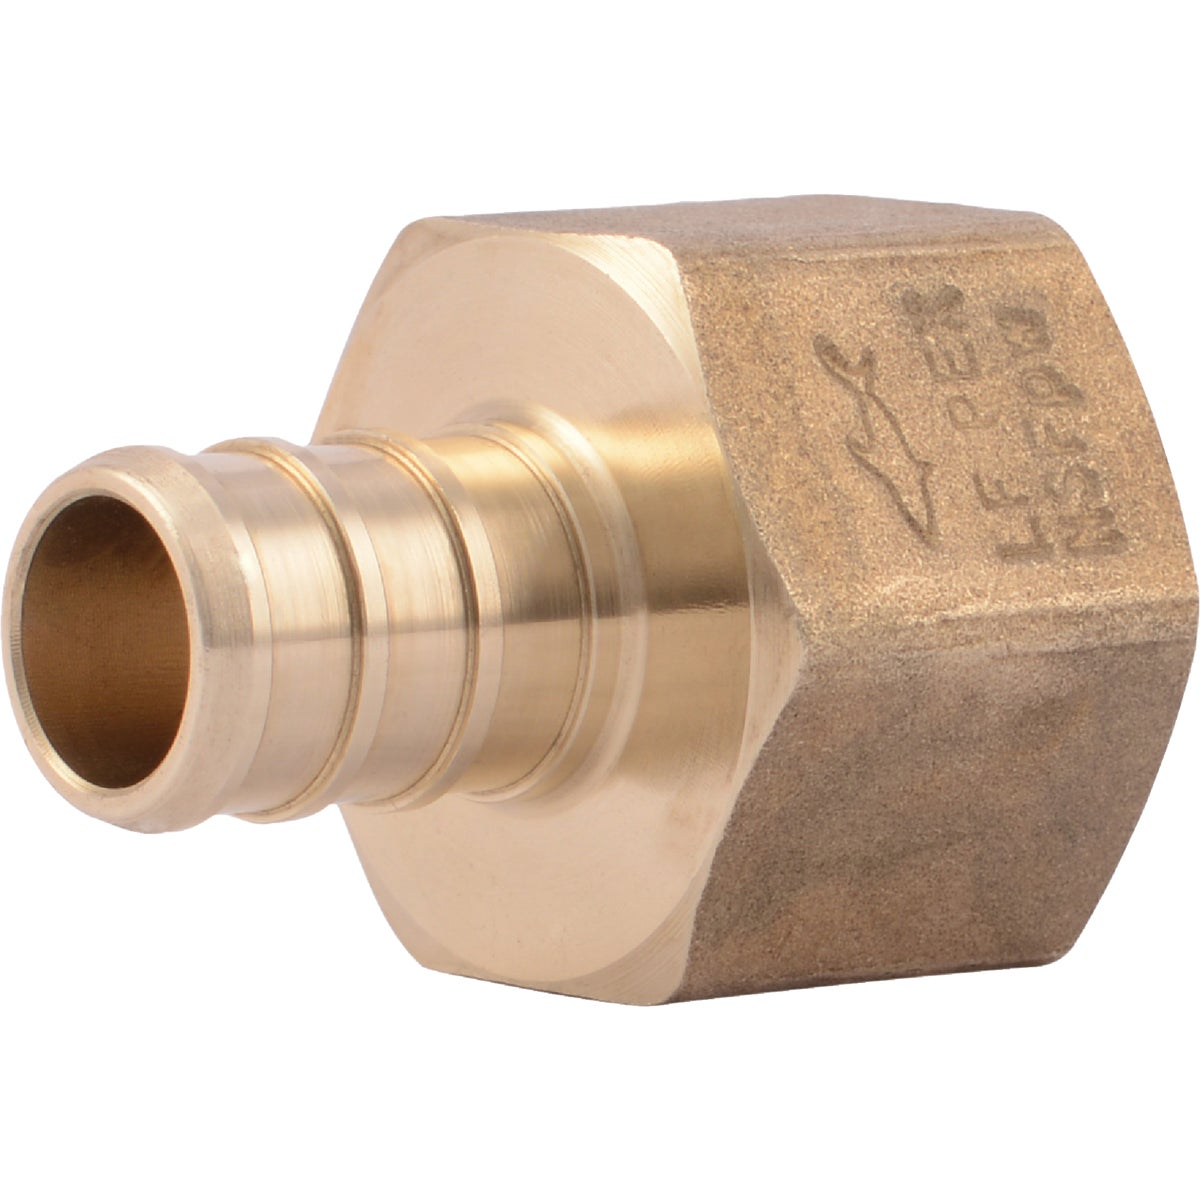 1/2 X 1/2 FEMALE ADAPTER - LFWP13B-0808PB by Watts Pex